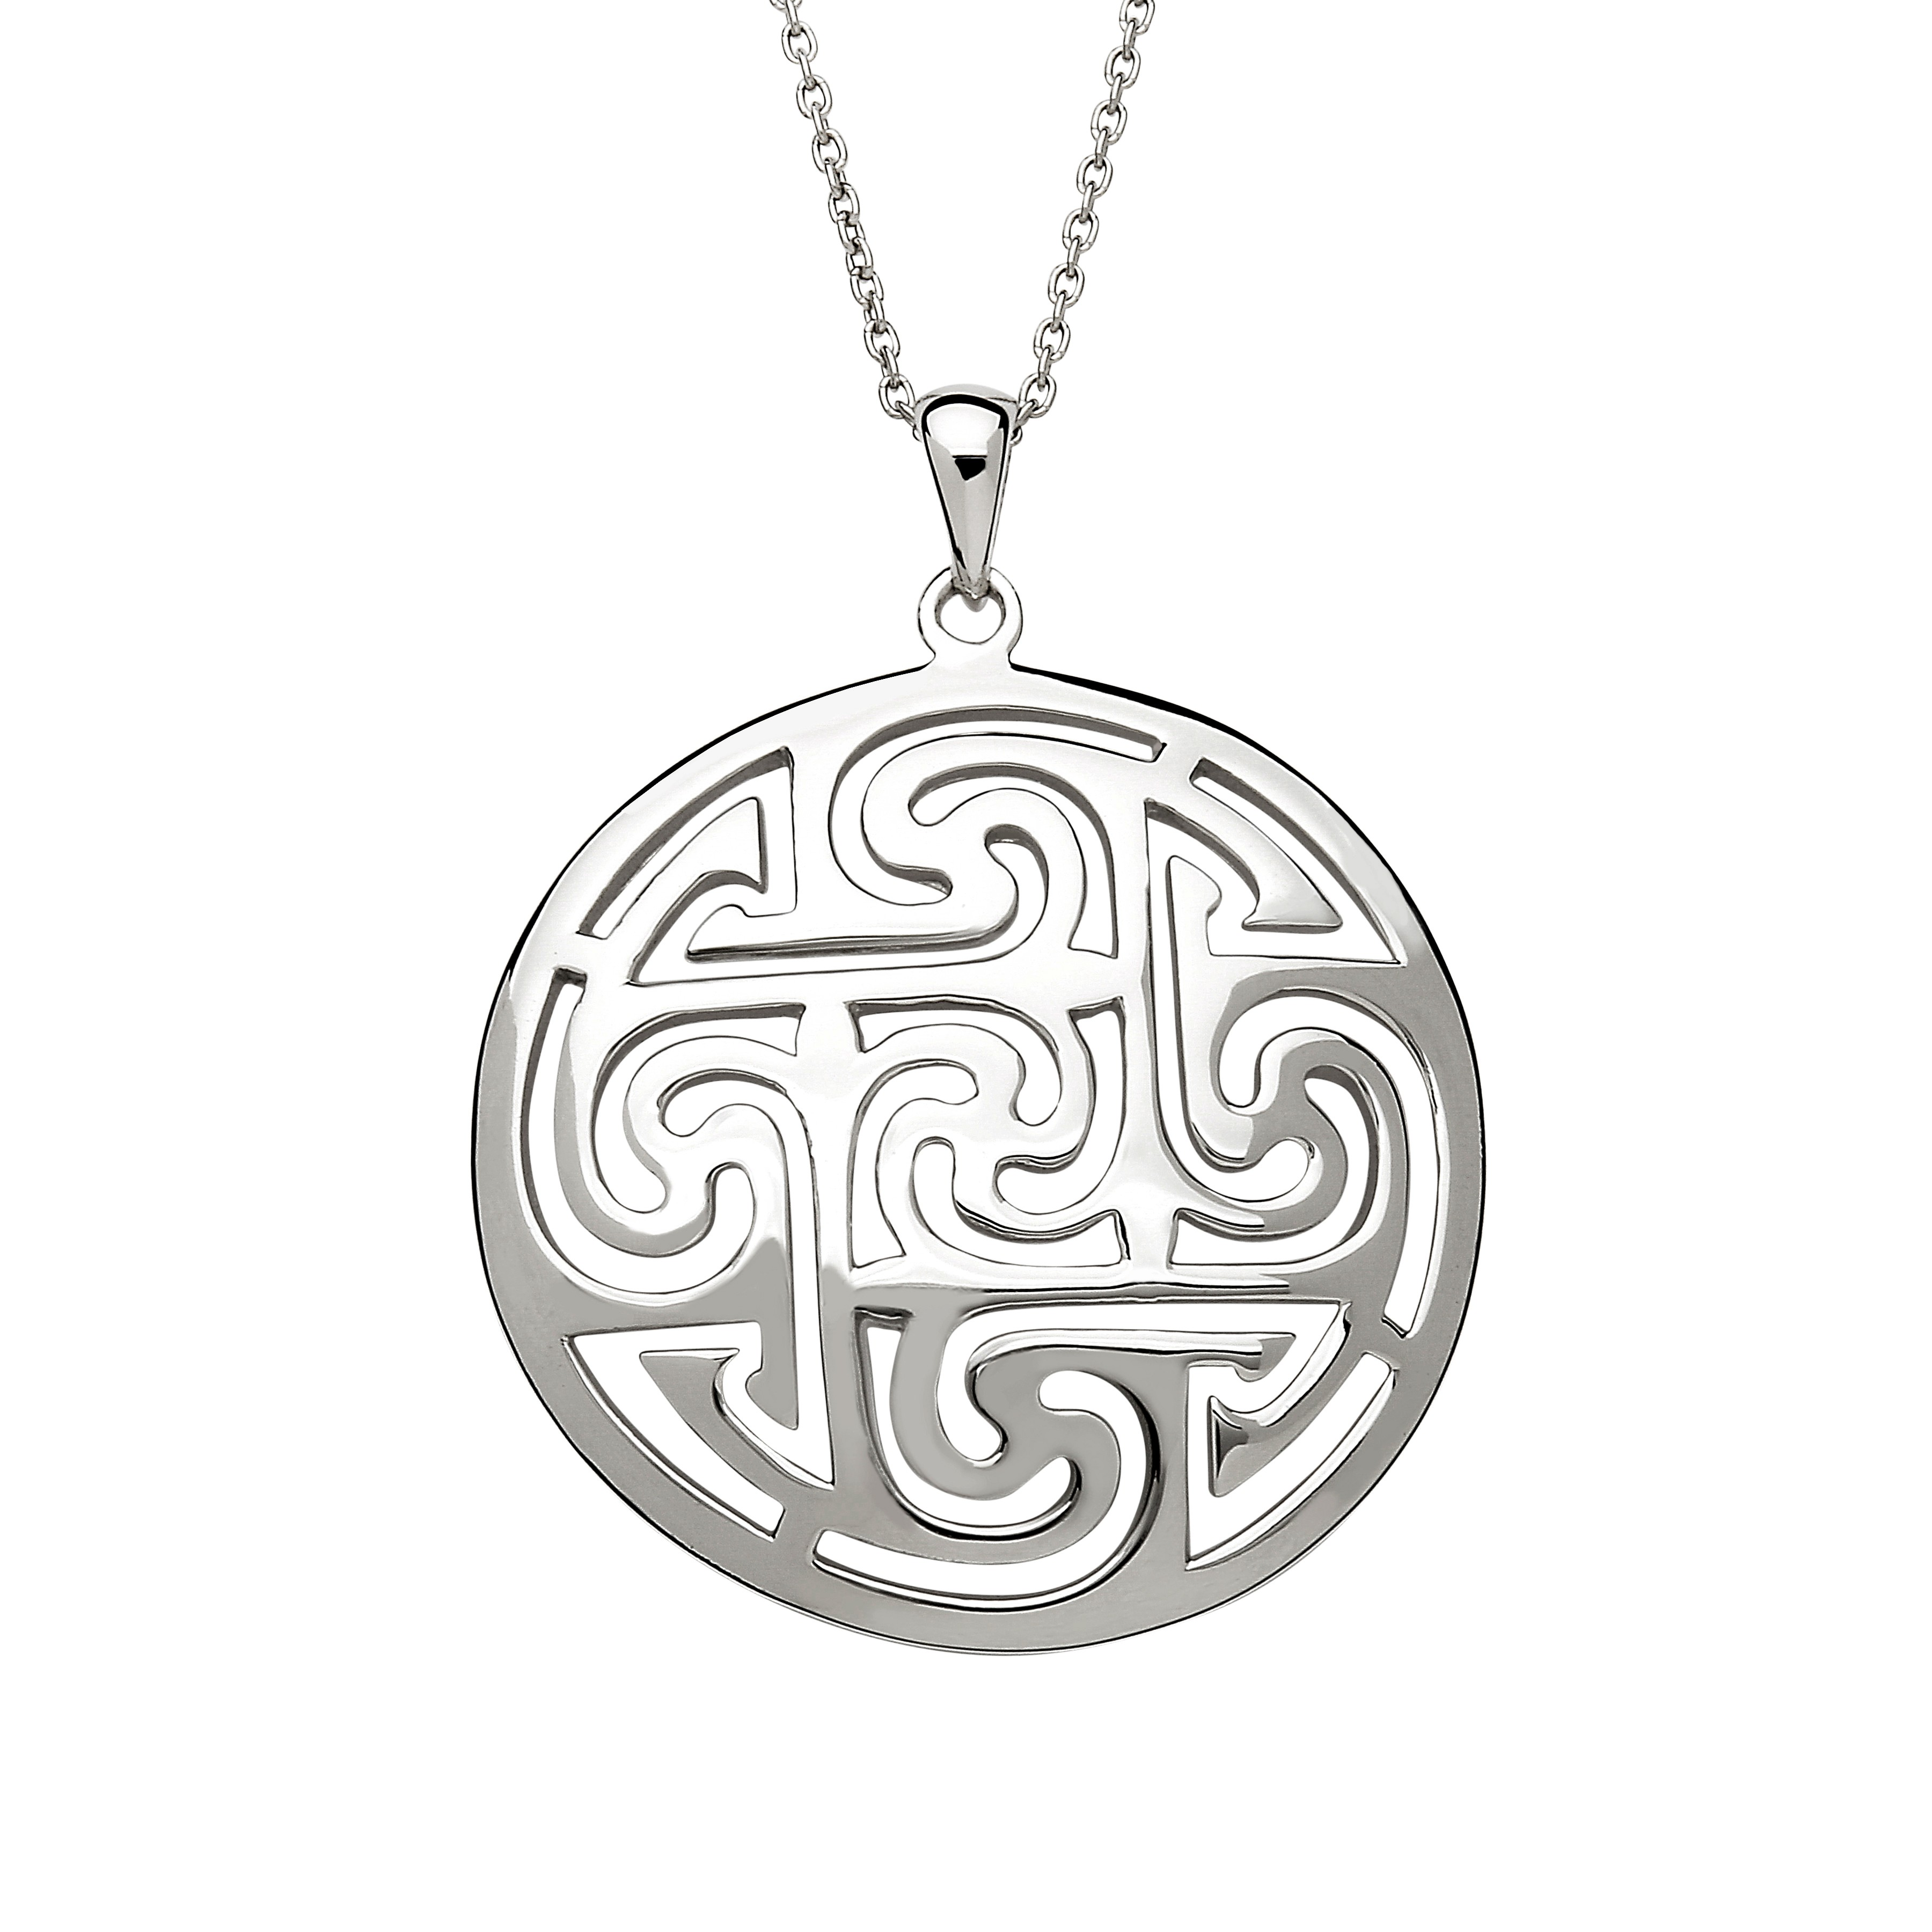 jewelry brass celtic moon silver sterling necklace pendant handmade itm chain vjnb